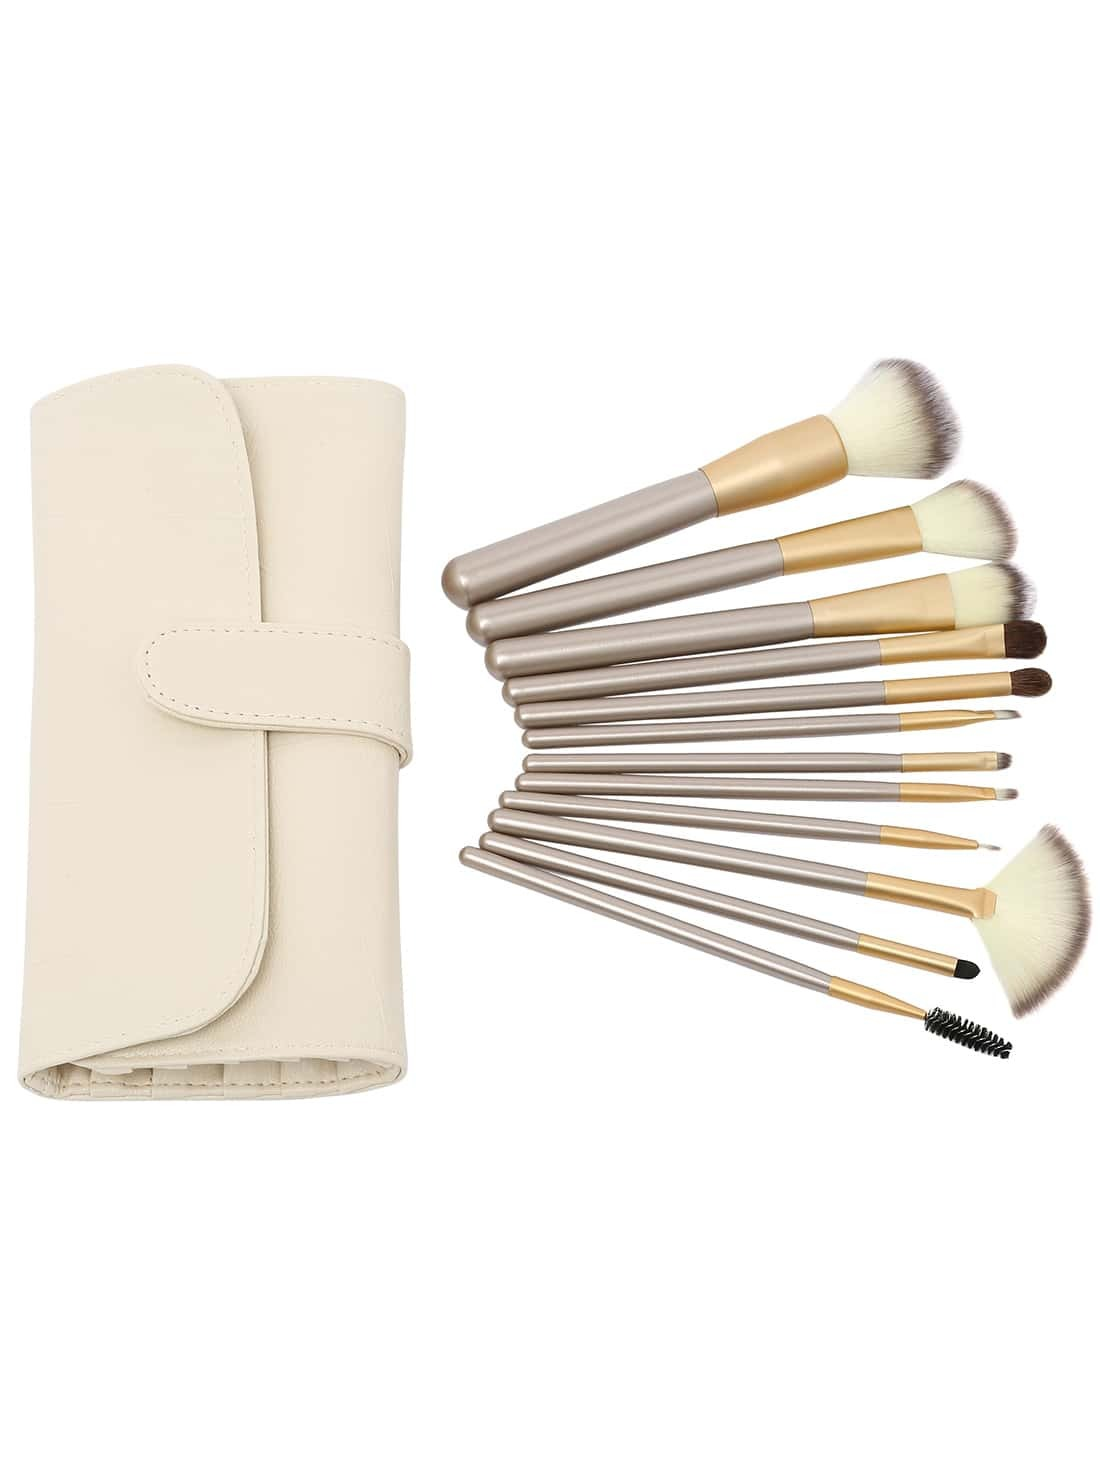 Image of 12PCS Make Up Bush Set With Bag - Beige